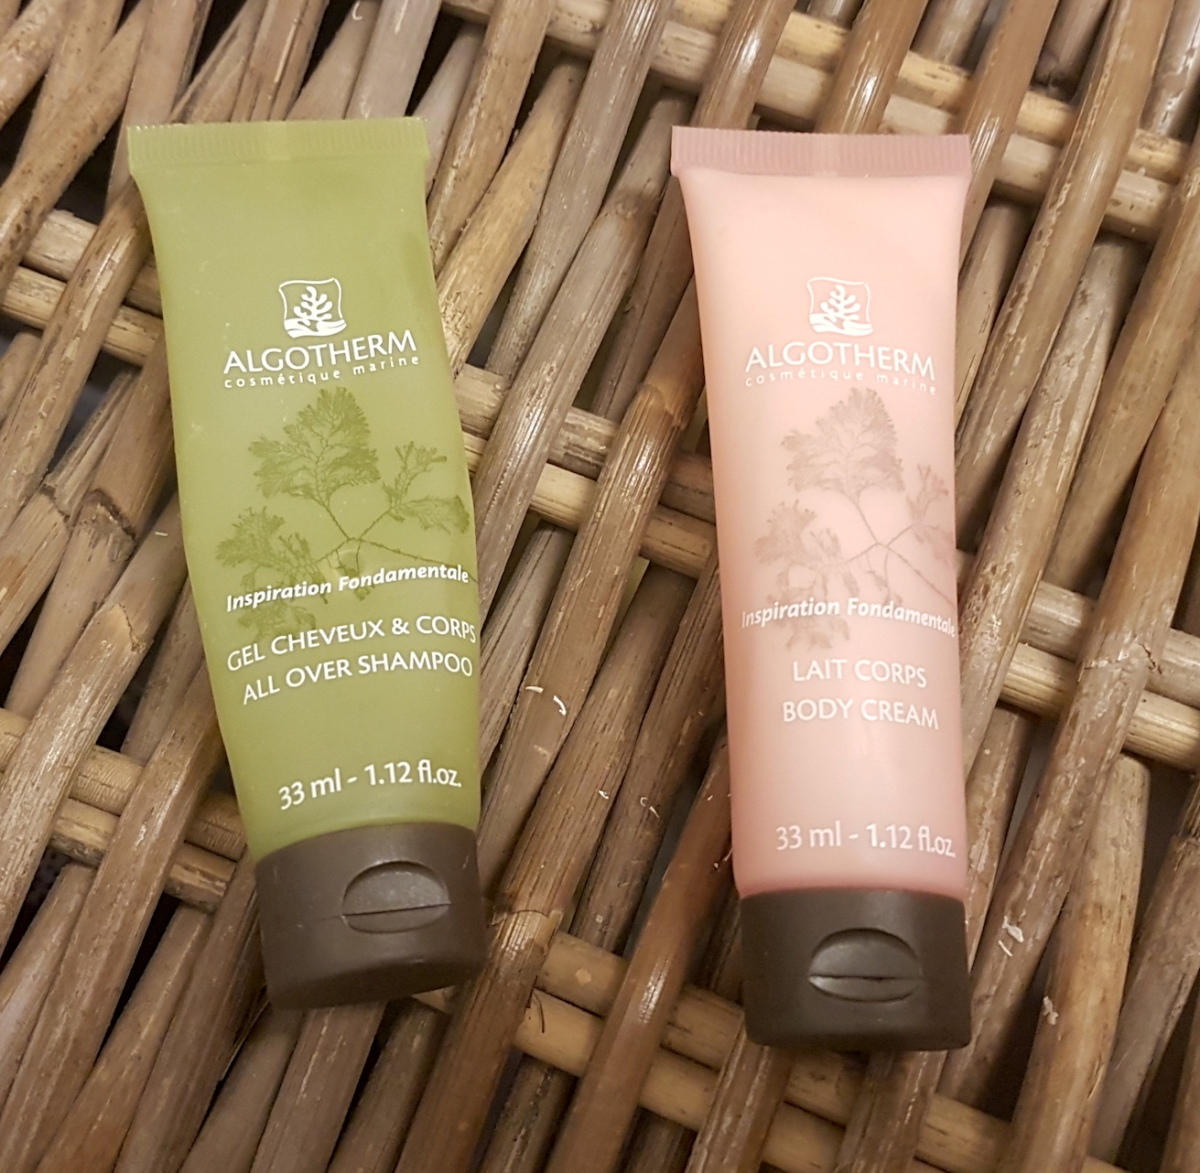 Sampling around: Algotherm, Cosmètique Marine, All over shampoo & Body Cream